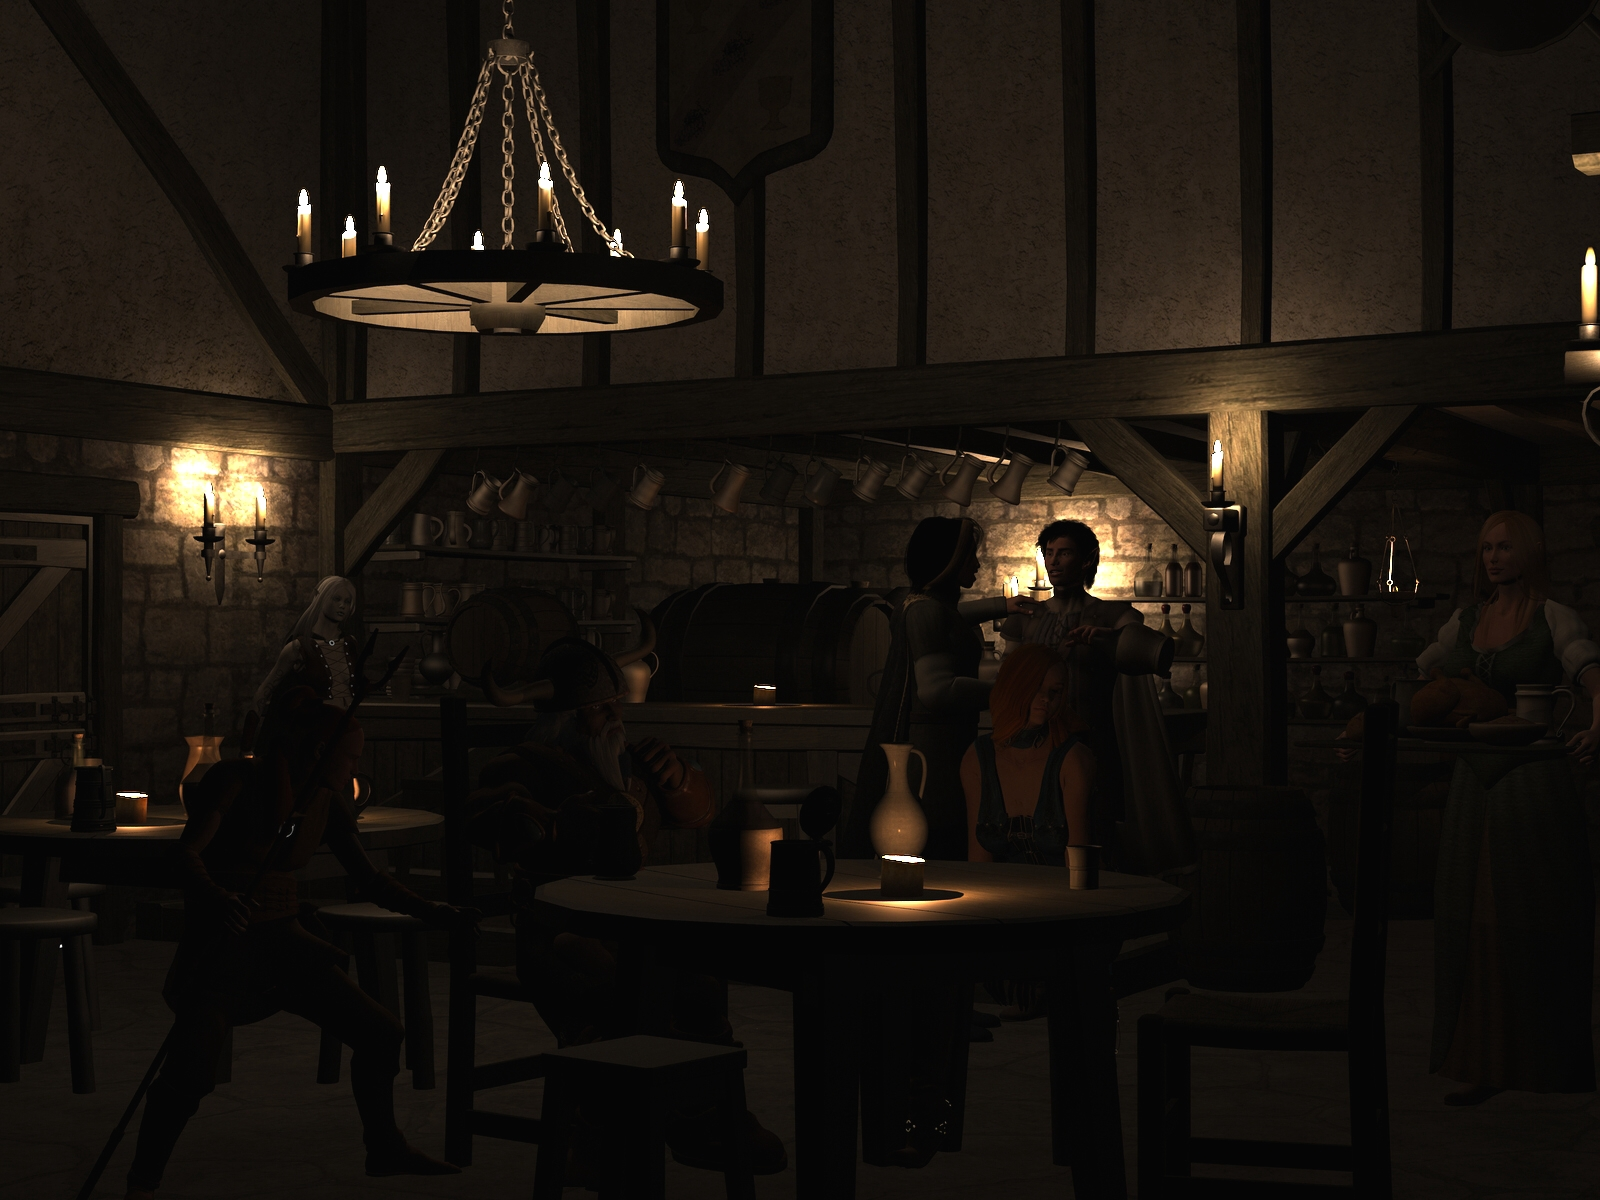 http://orig04.deviantart.net/4666/f/2008/056/2/6/the_gathering__tavern__by_nangel1298.jpg